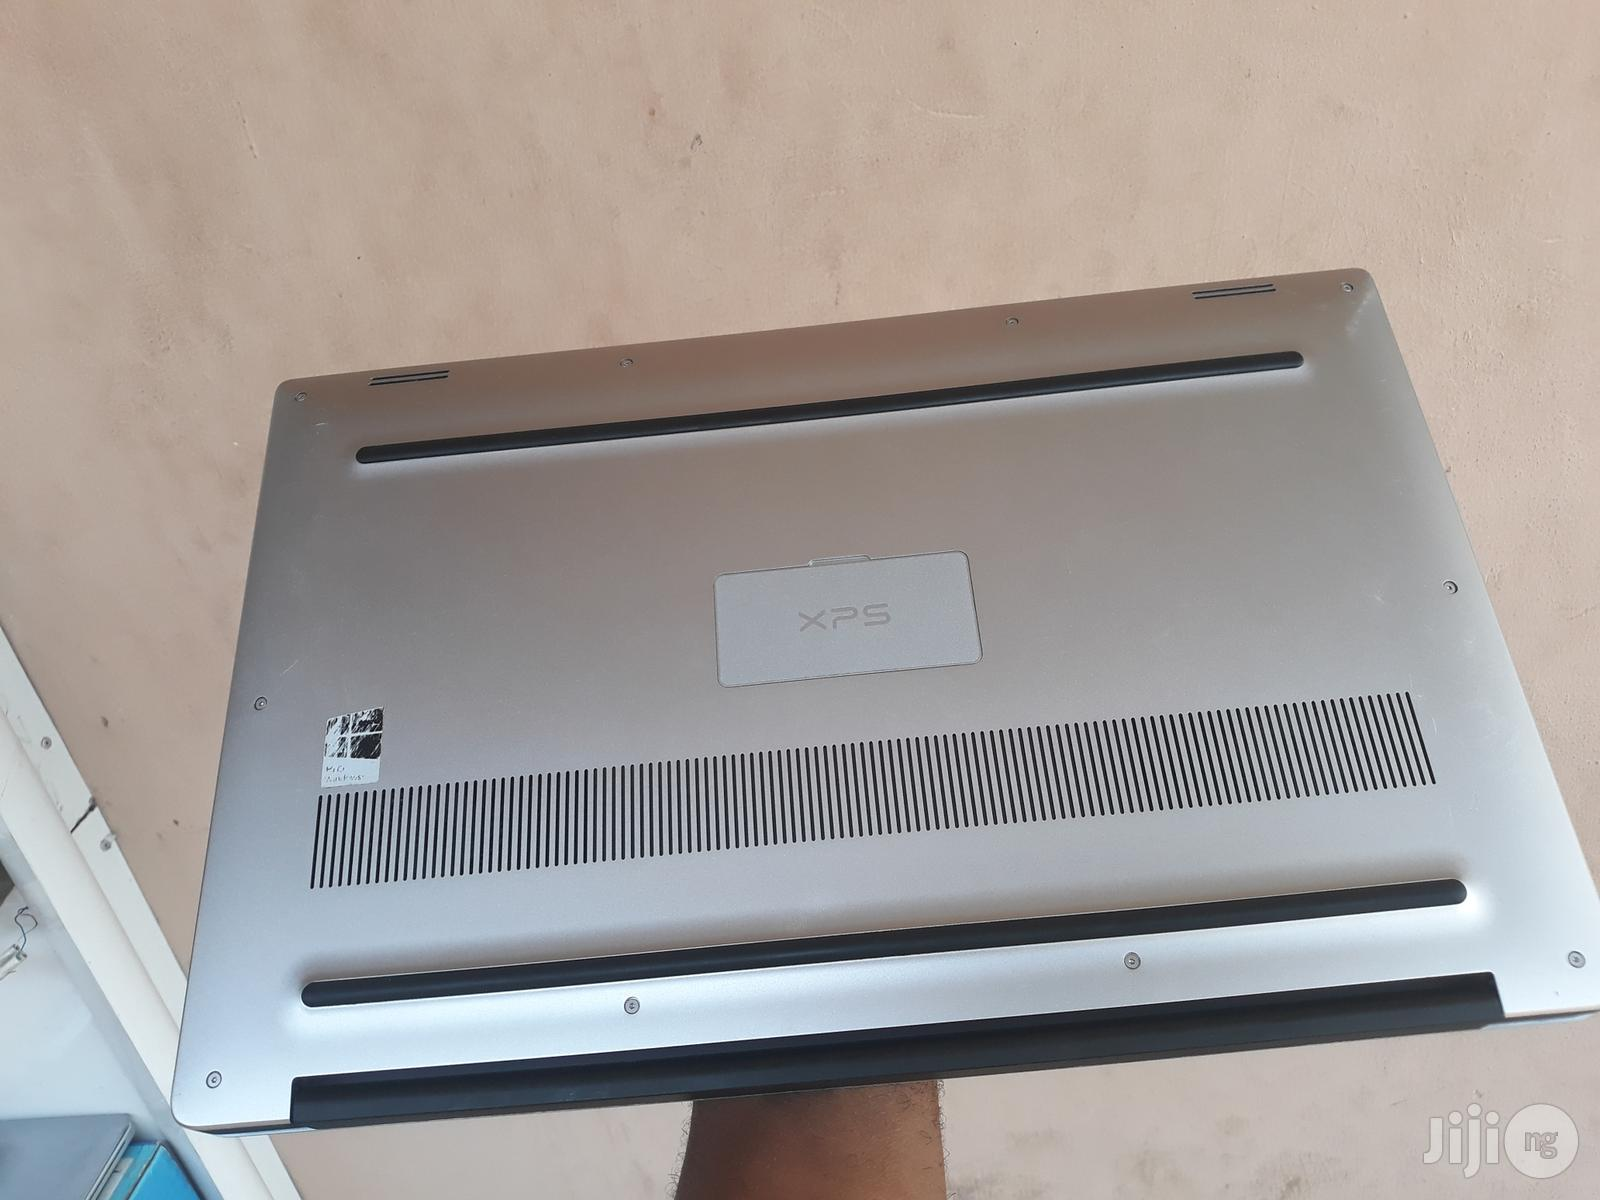 Dell XPS 15 Core i5 1.5 T Ssd 16 Gb Ram | Laptops & Computers for sale in Ikeja, Lagos State, Nigeria